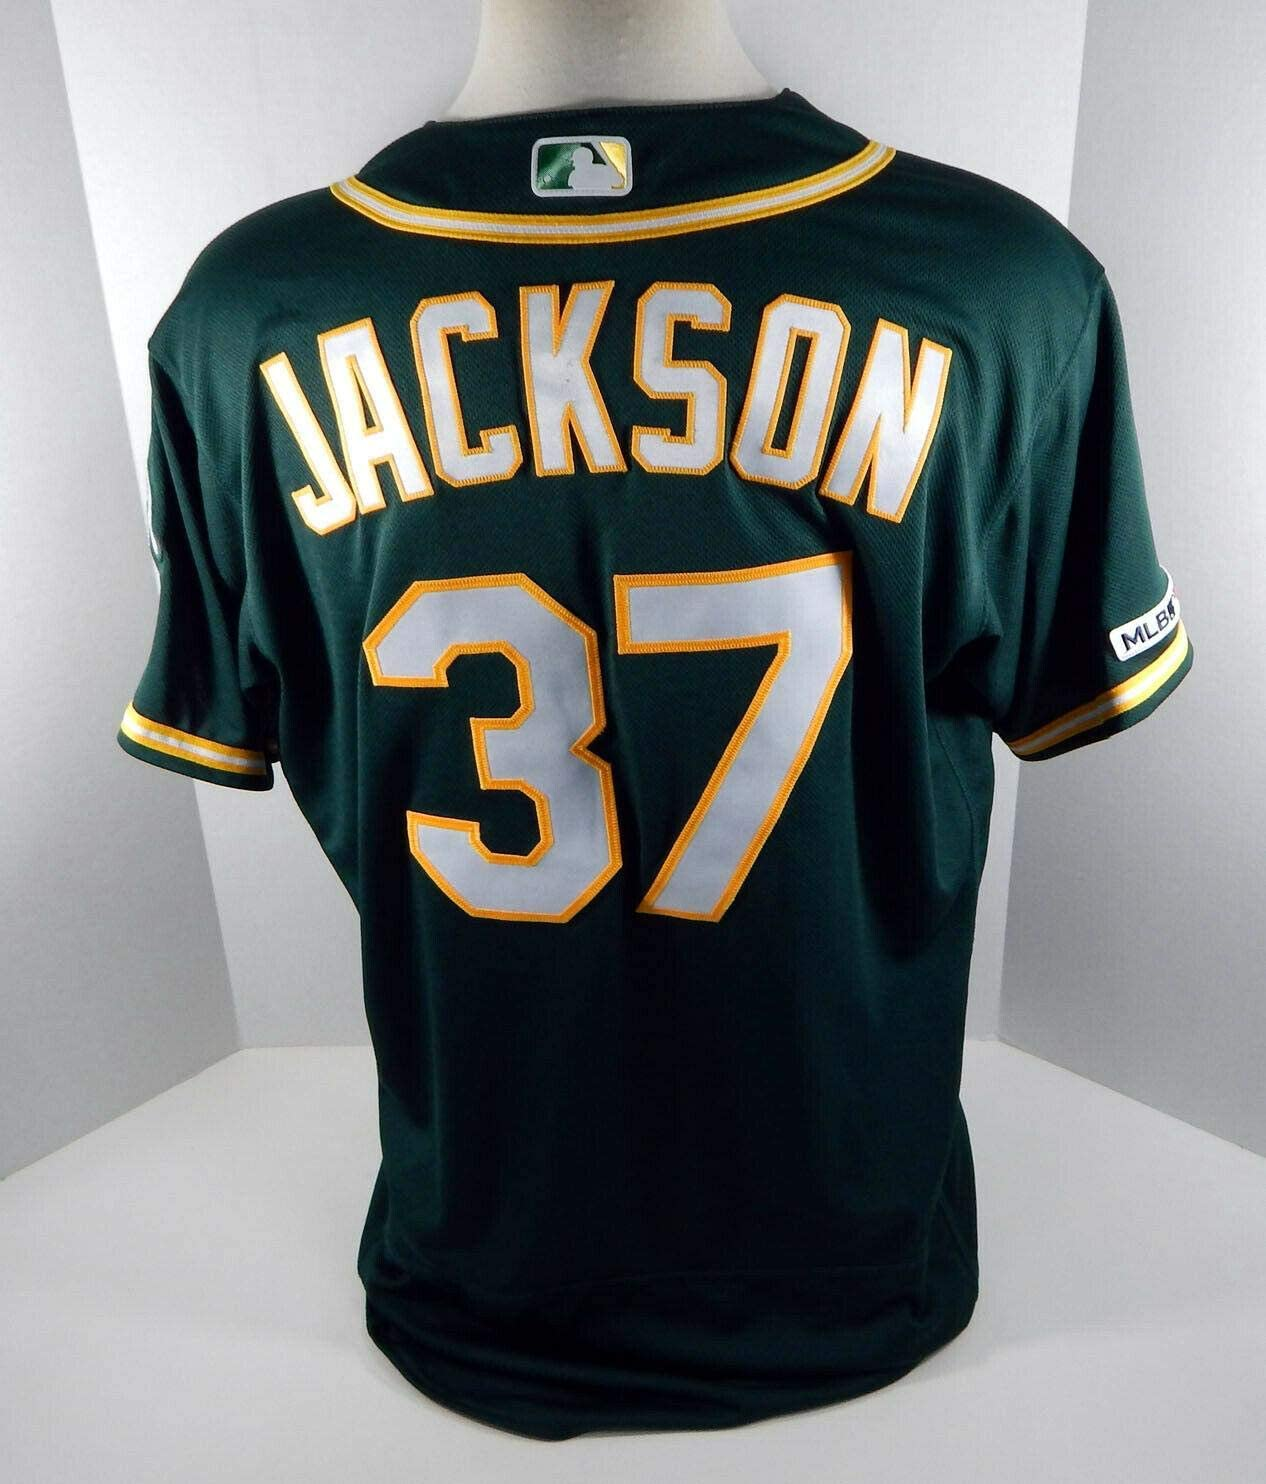 2019 Oakland A's Athletics Edwin Jackson #37 Game Issued Green Jersey 150 Years - Game Used MLB Jerseys